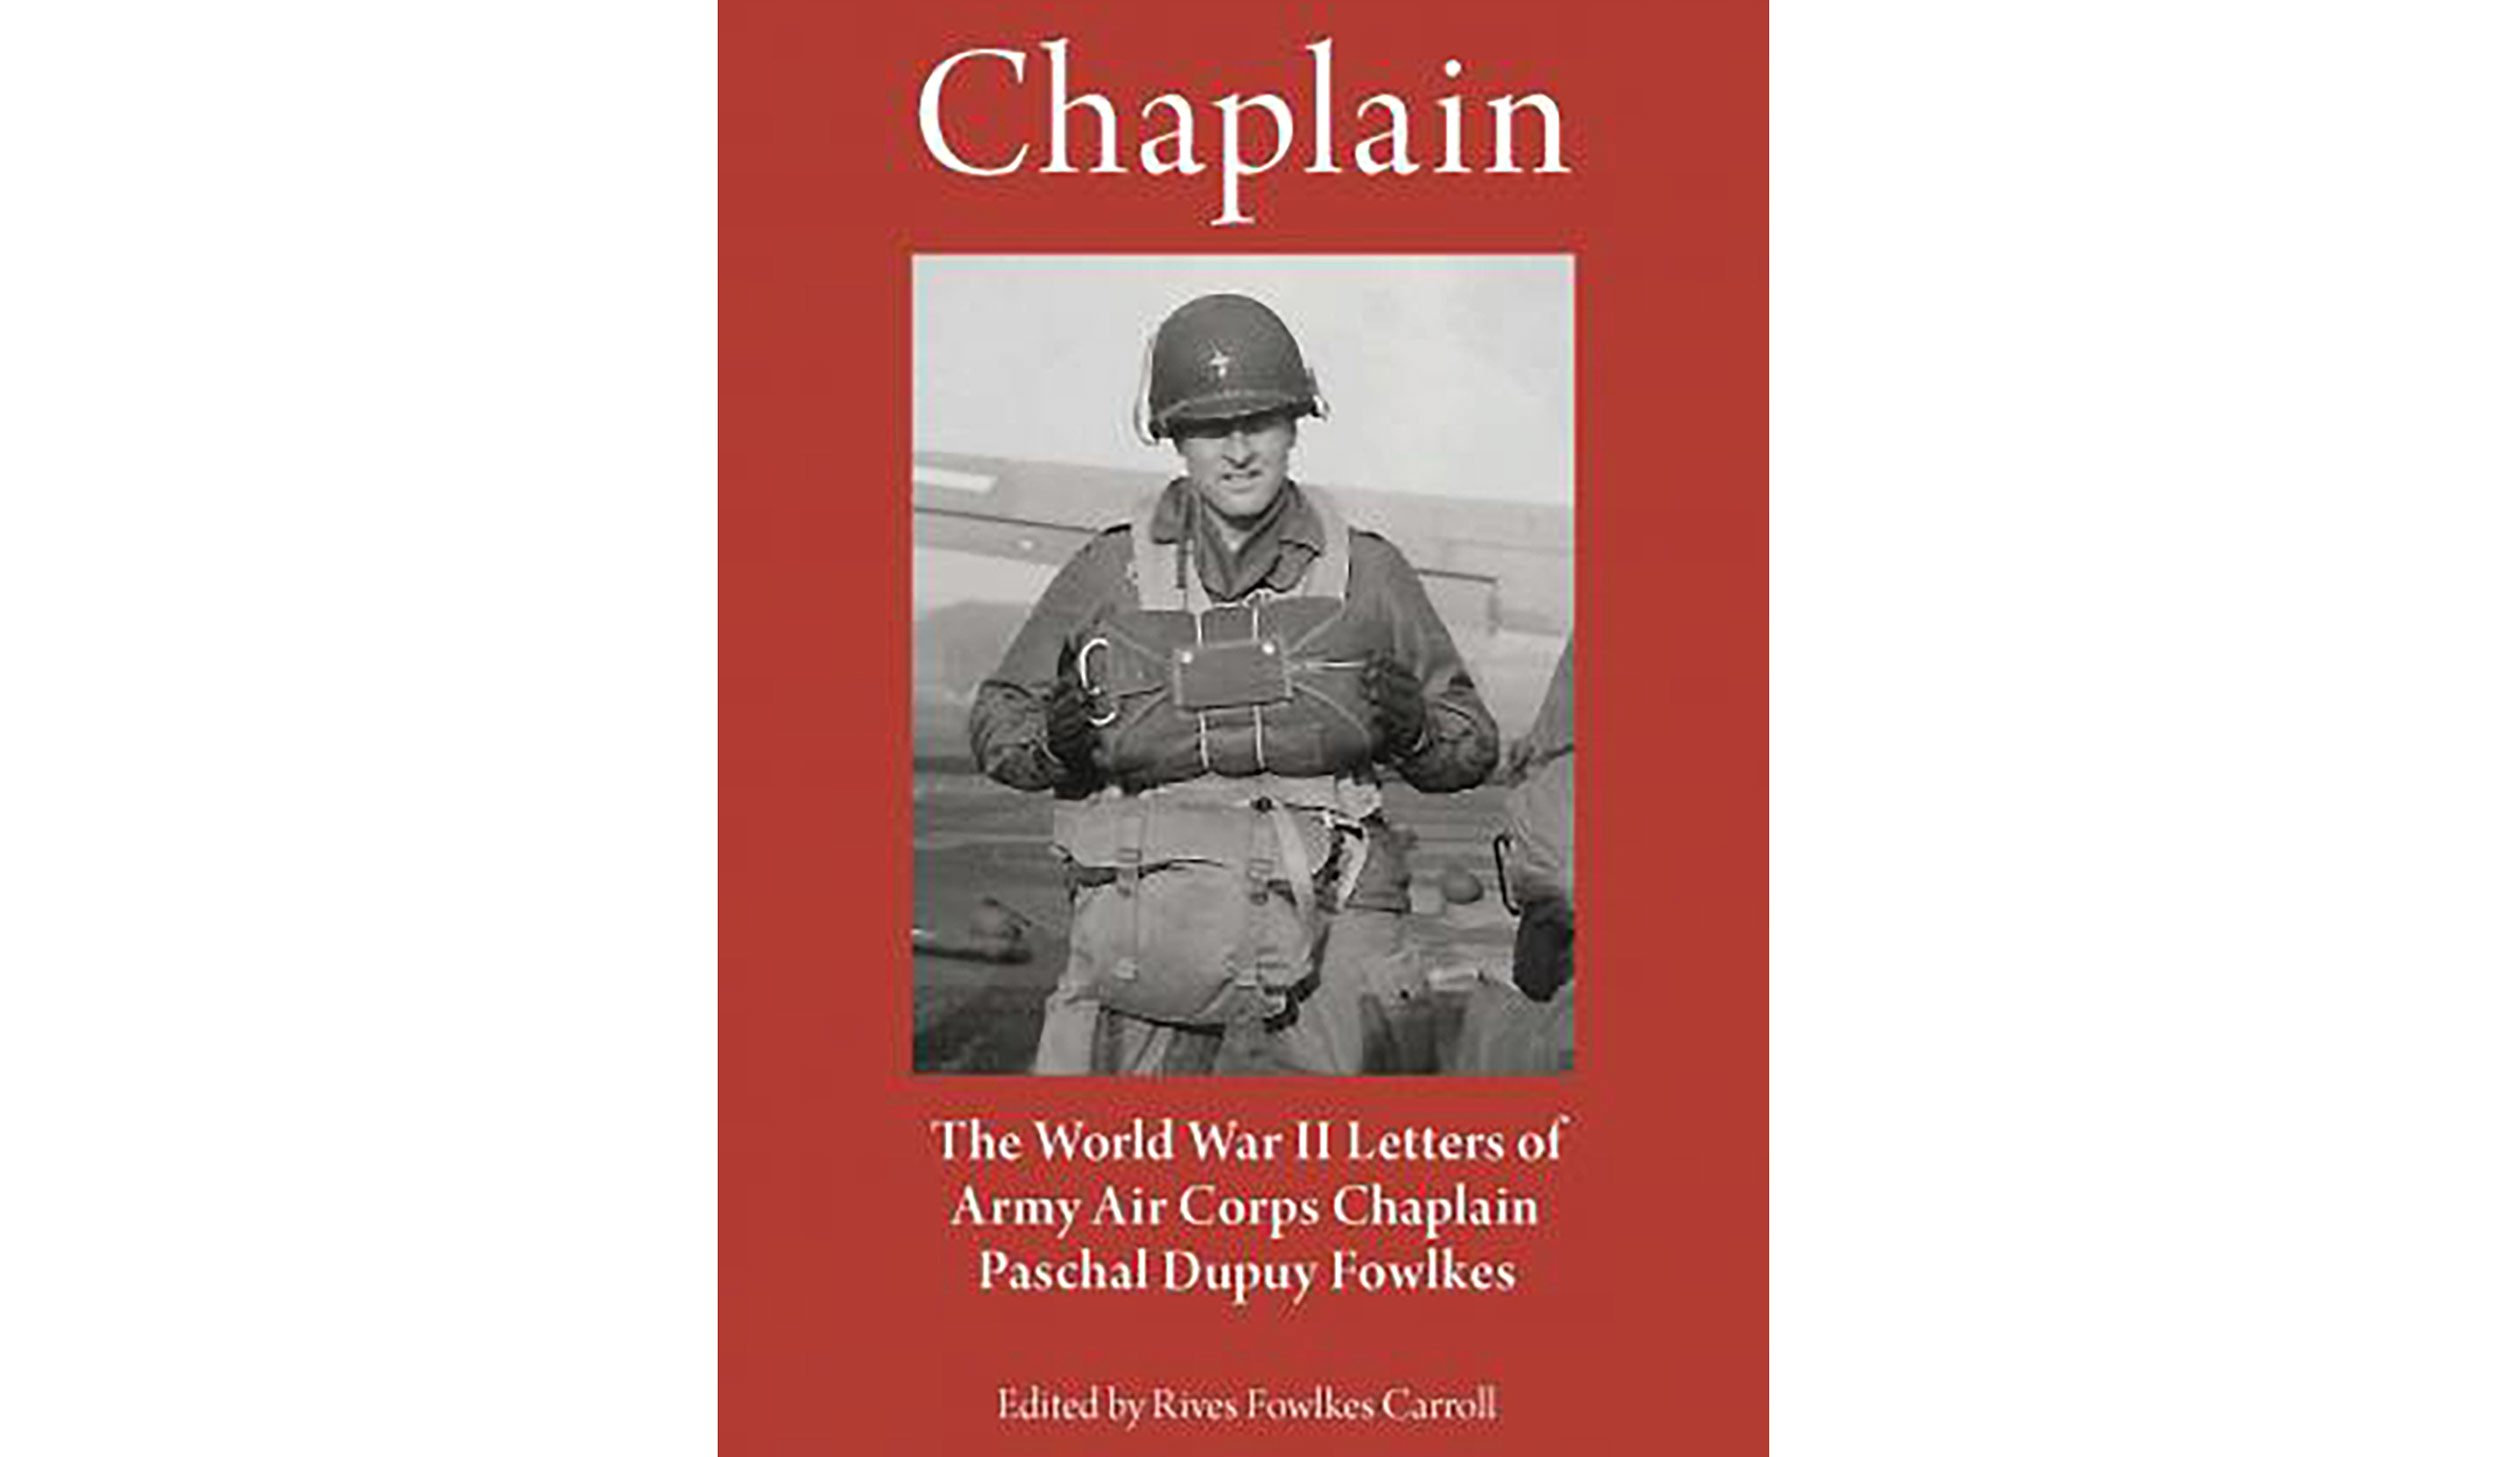 BOOK REVIEW: 'Chaplain' edited by Rives Fowlkes Carroll